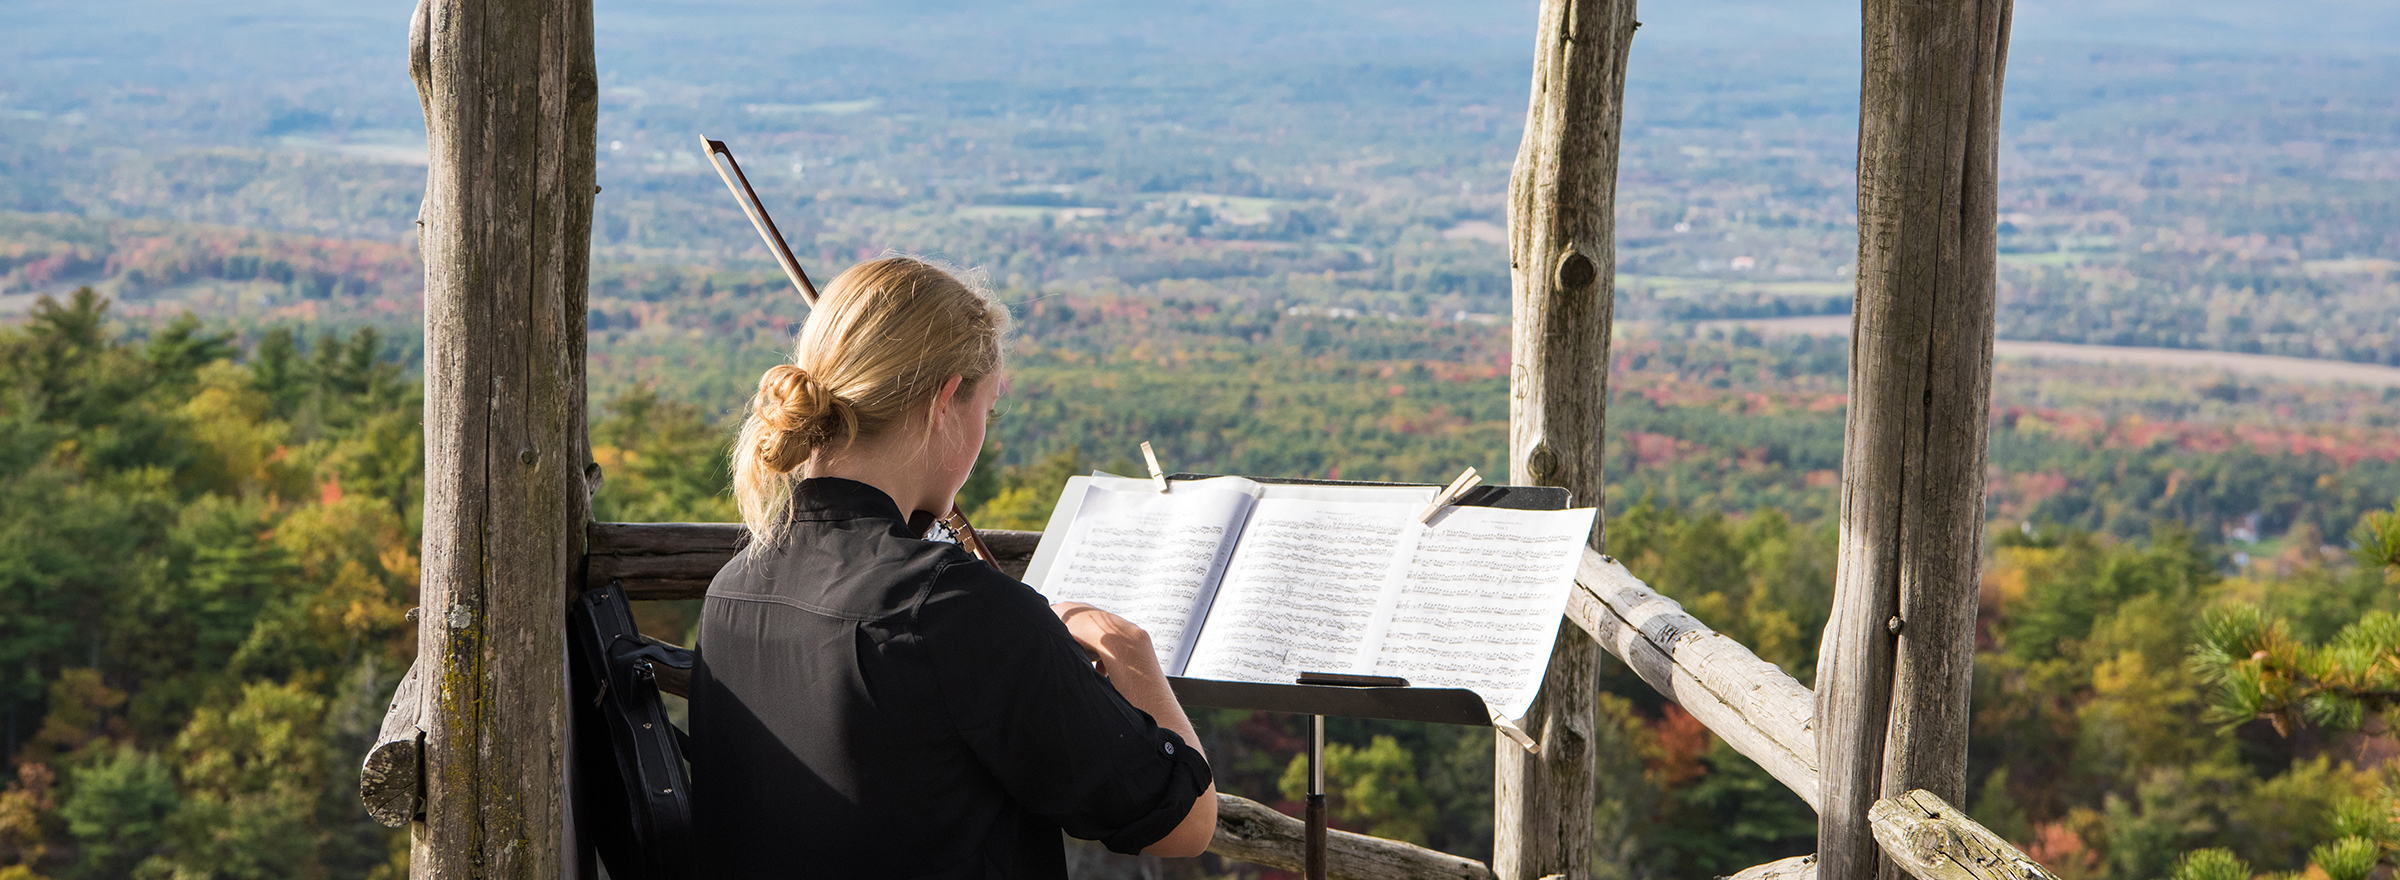 music performance at mohonk mountain house